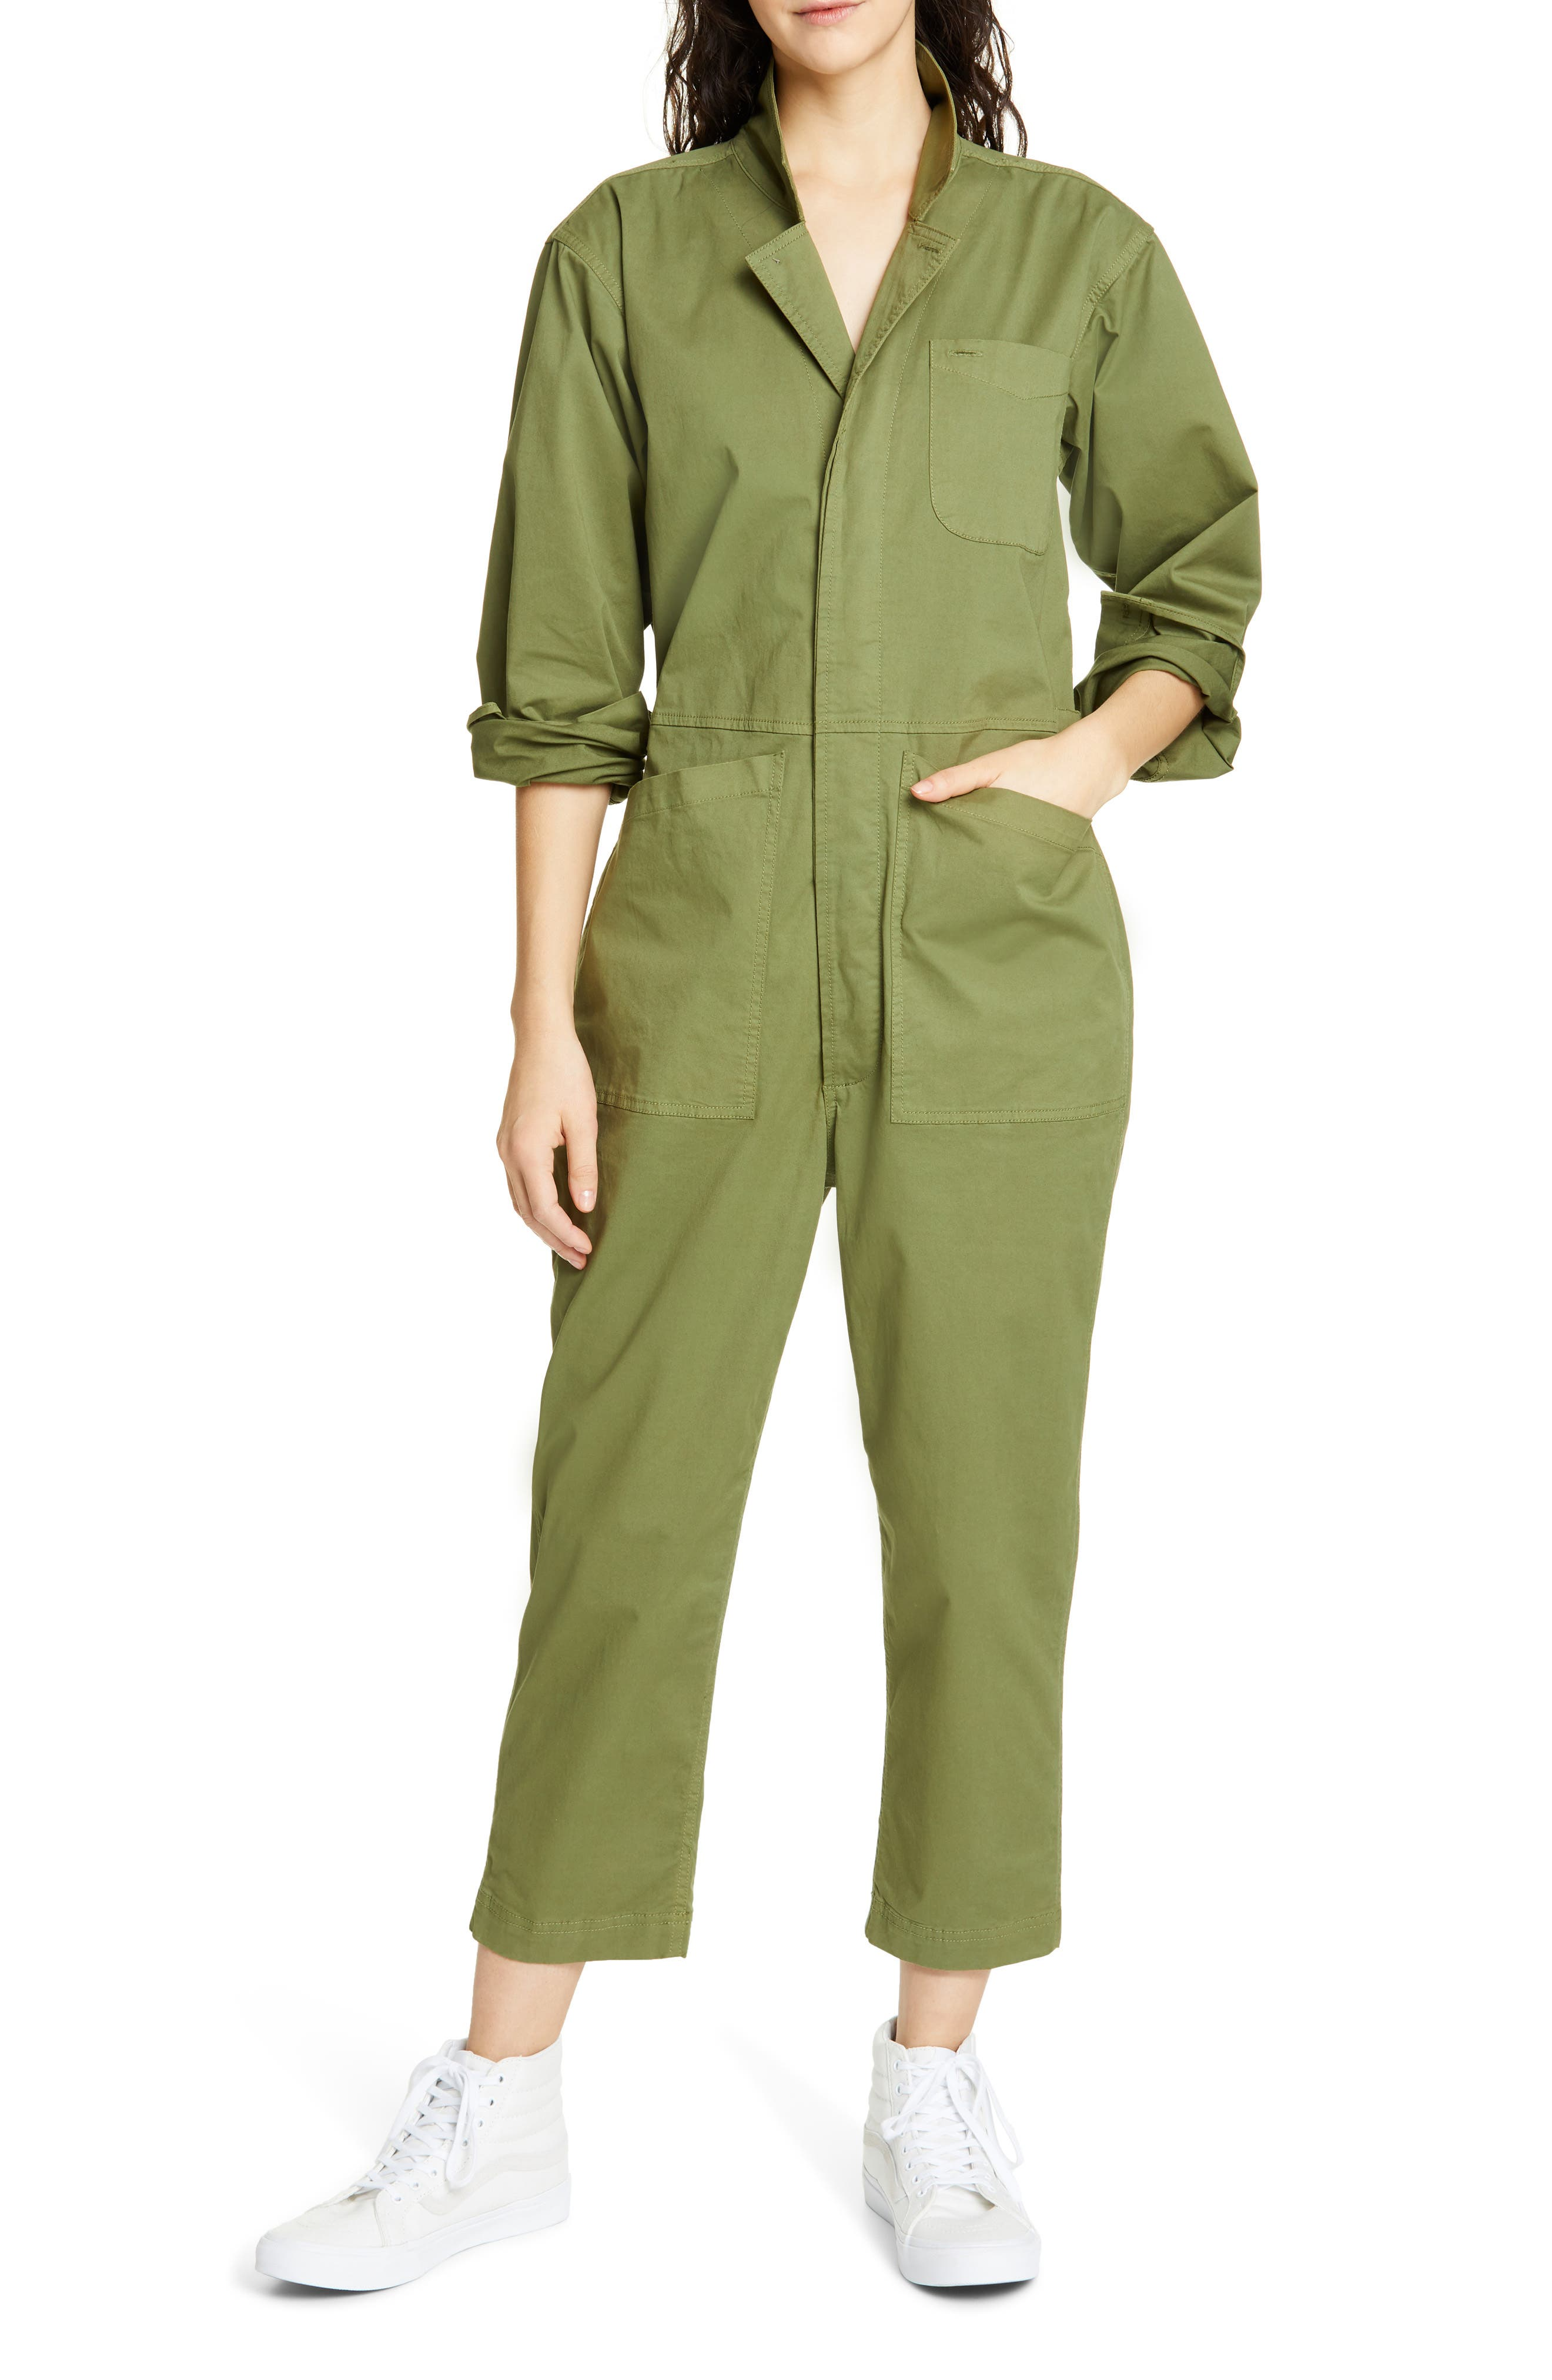 ALEX MILL, Stretch Cotton Jumpsuit, Main thumbnail 1, color, ARMY GREEN